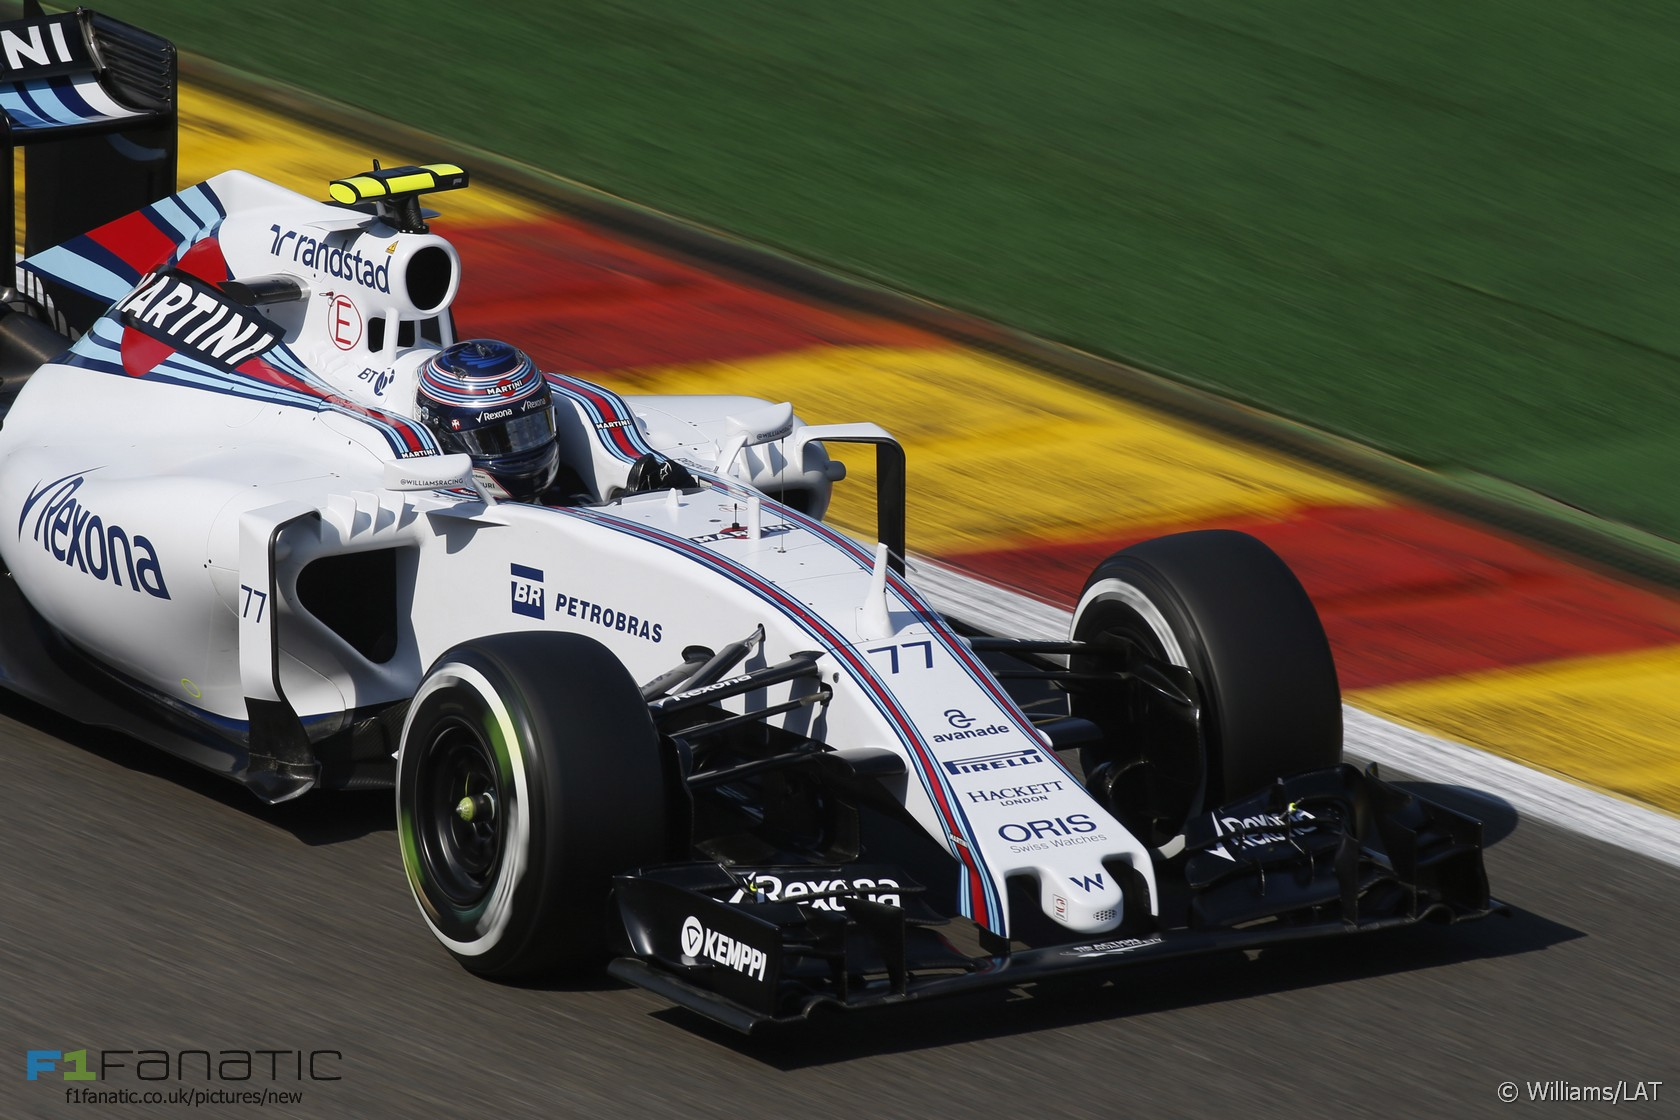 Valtteri Bottas, Williams, Spa-Francorchamps, 2015